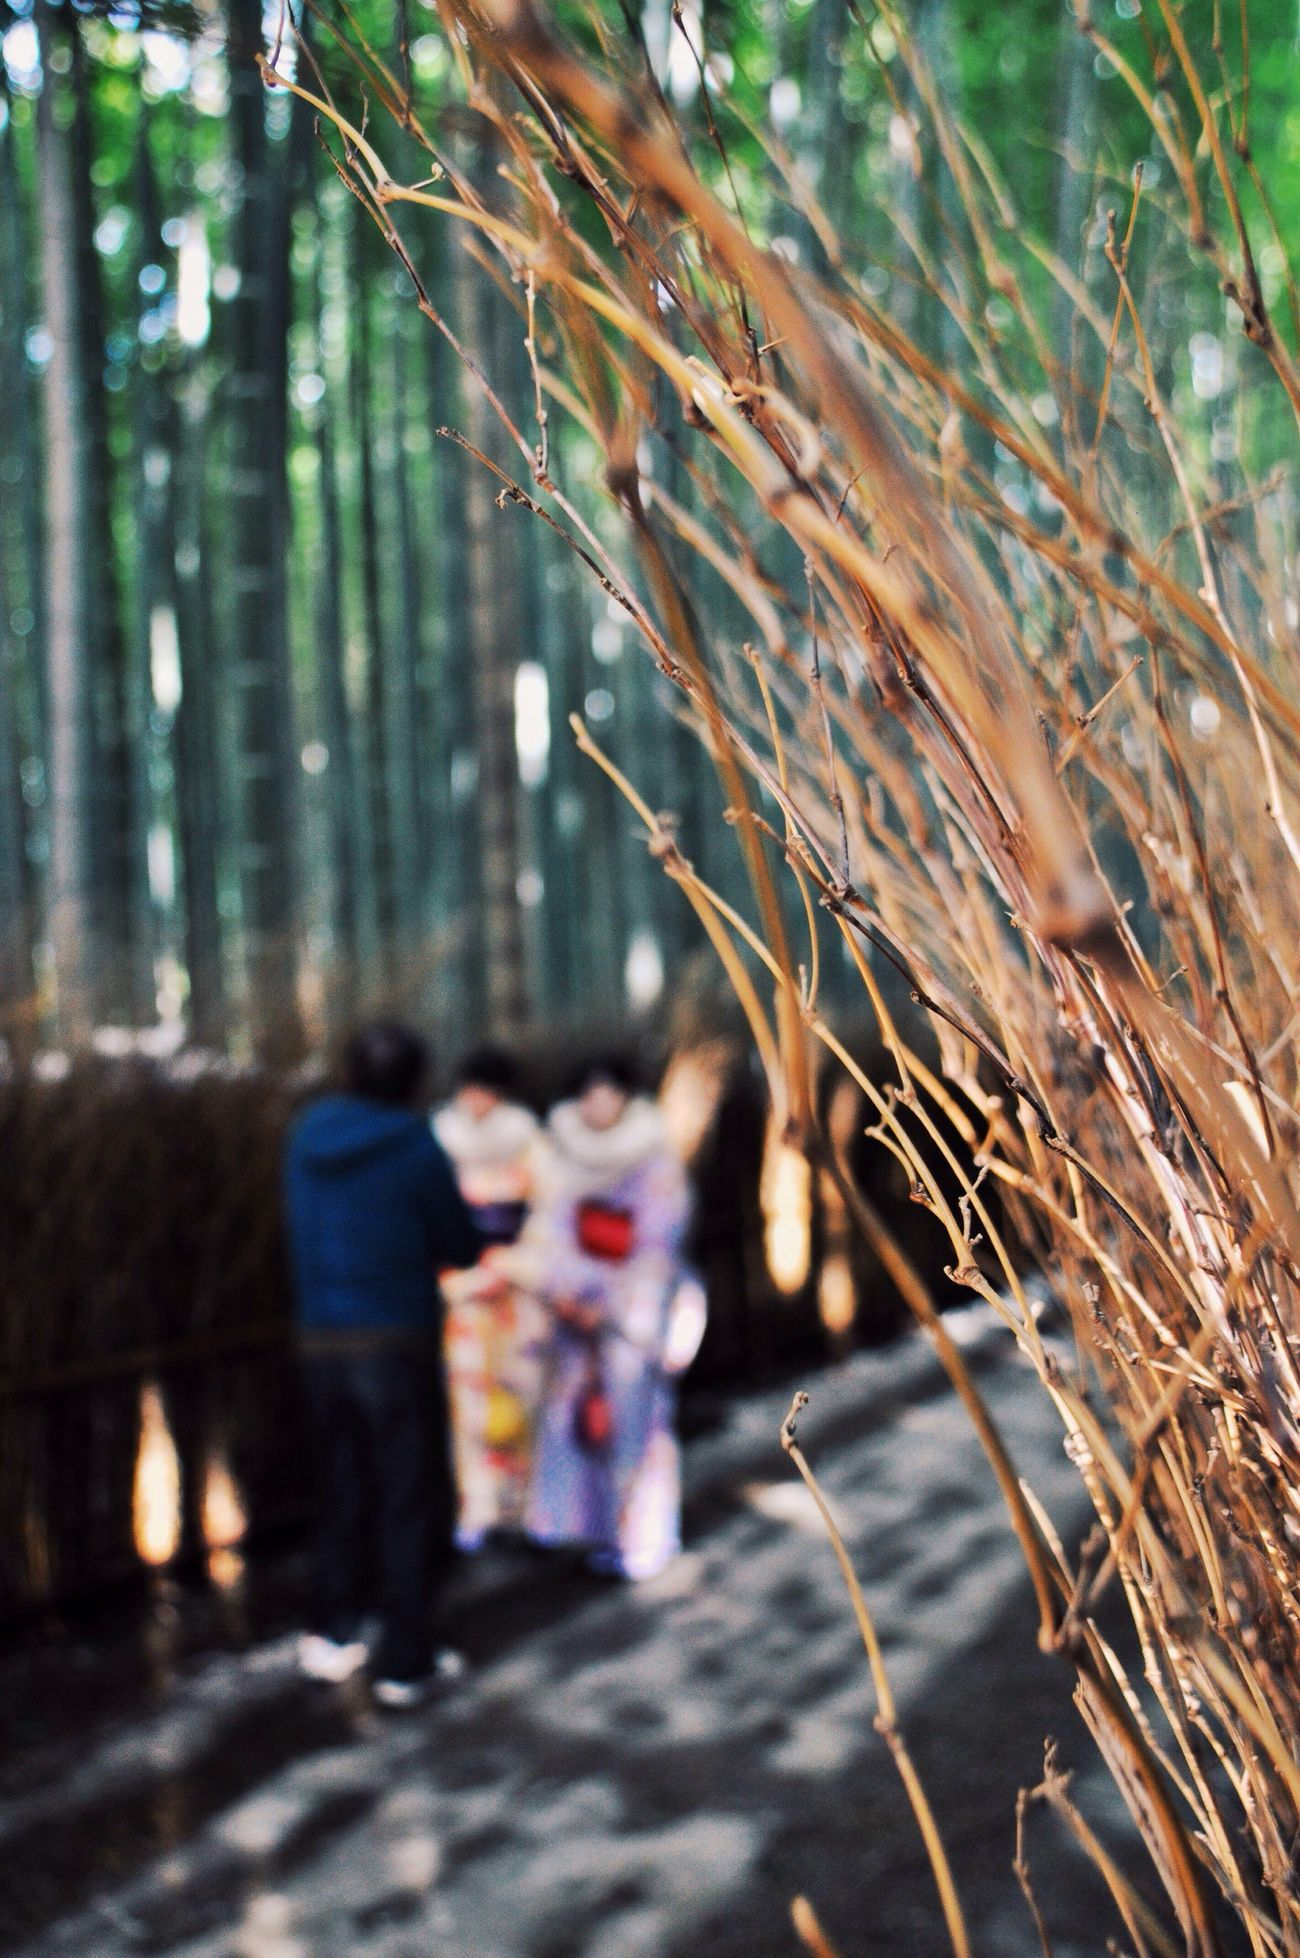 Real People Lifestyles Men Rear View Walking Leisure Activity Women Outdoors Nature Tree Day Togetherness Bamboo Grove